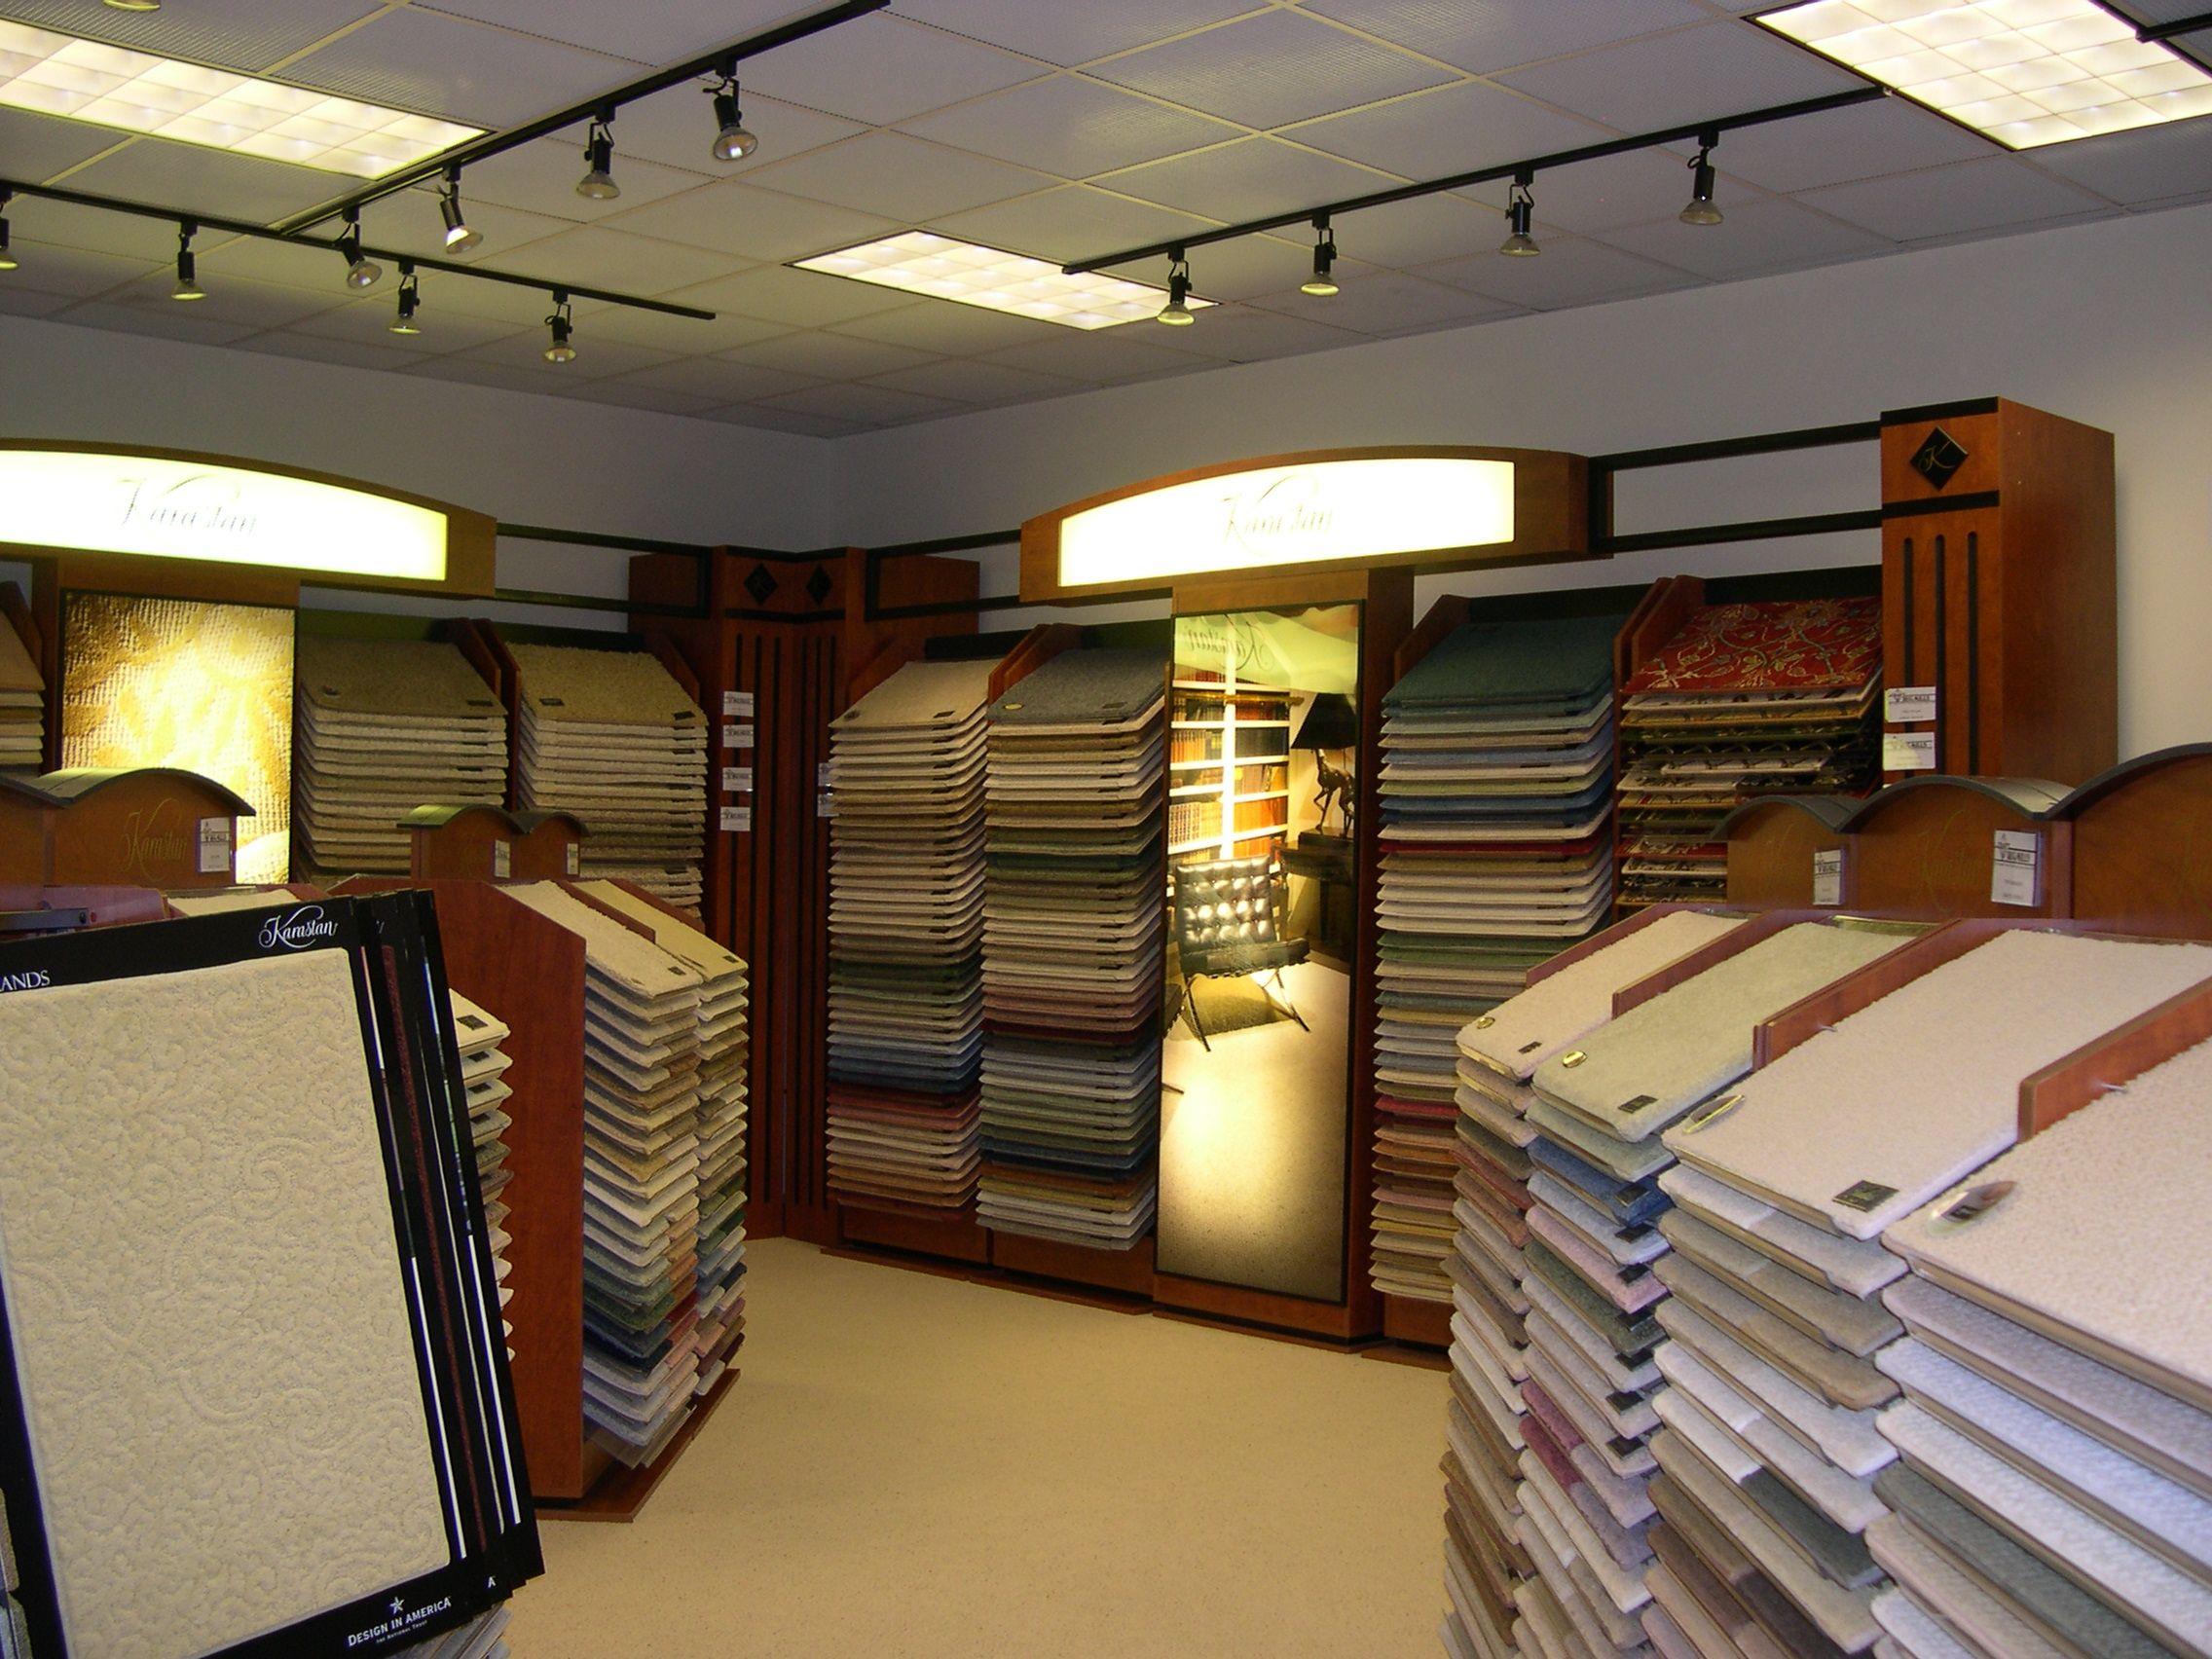 The Best 20 Pics Craft Rug Mills Allentown Pa And View Home Decor Home Decor